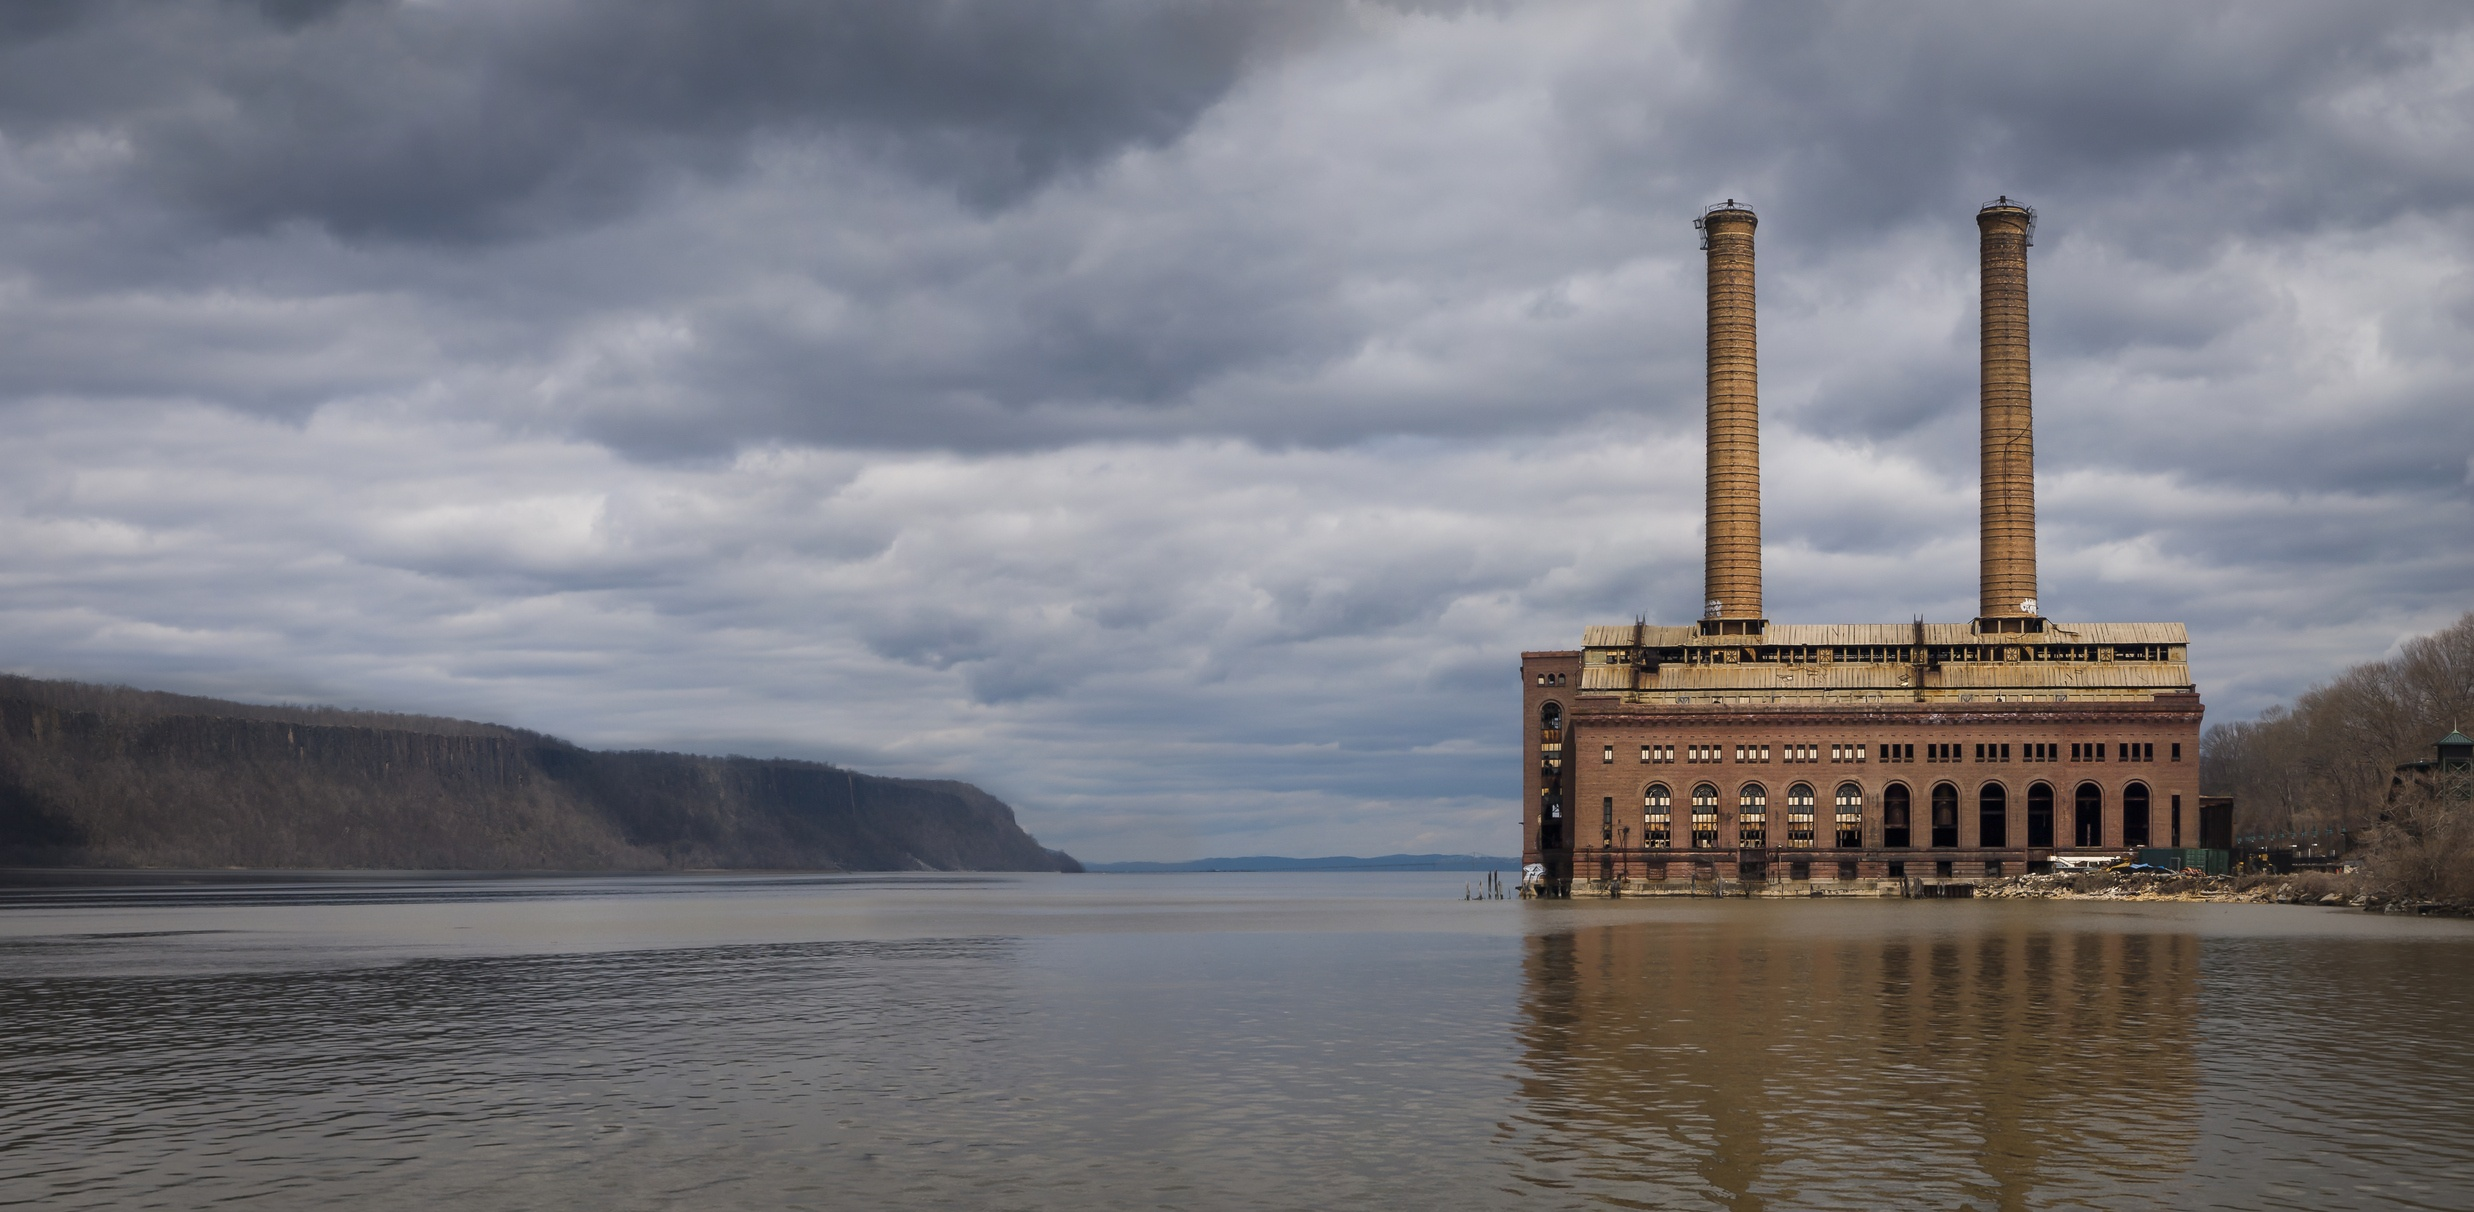 Abandoned Power Station on the Hudson River